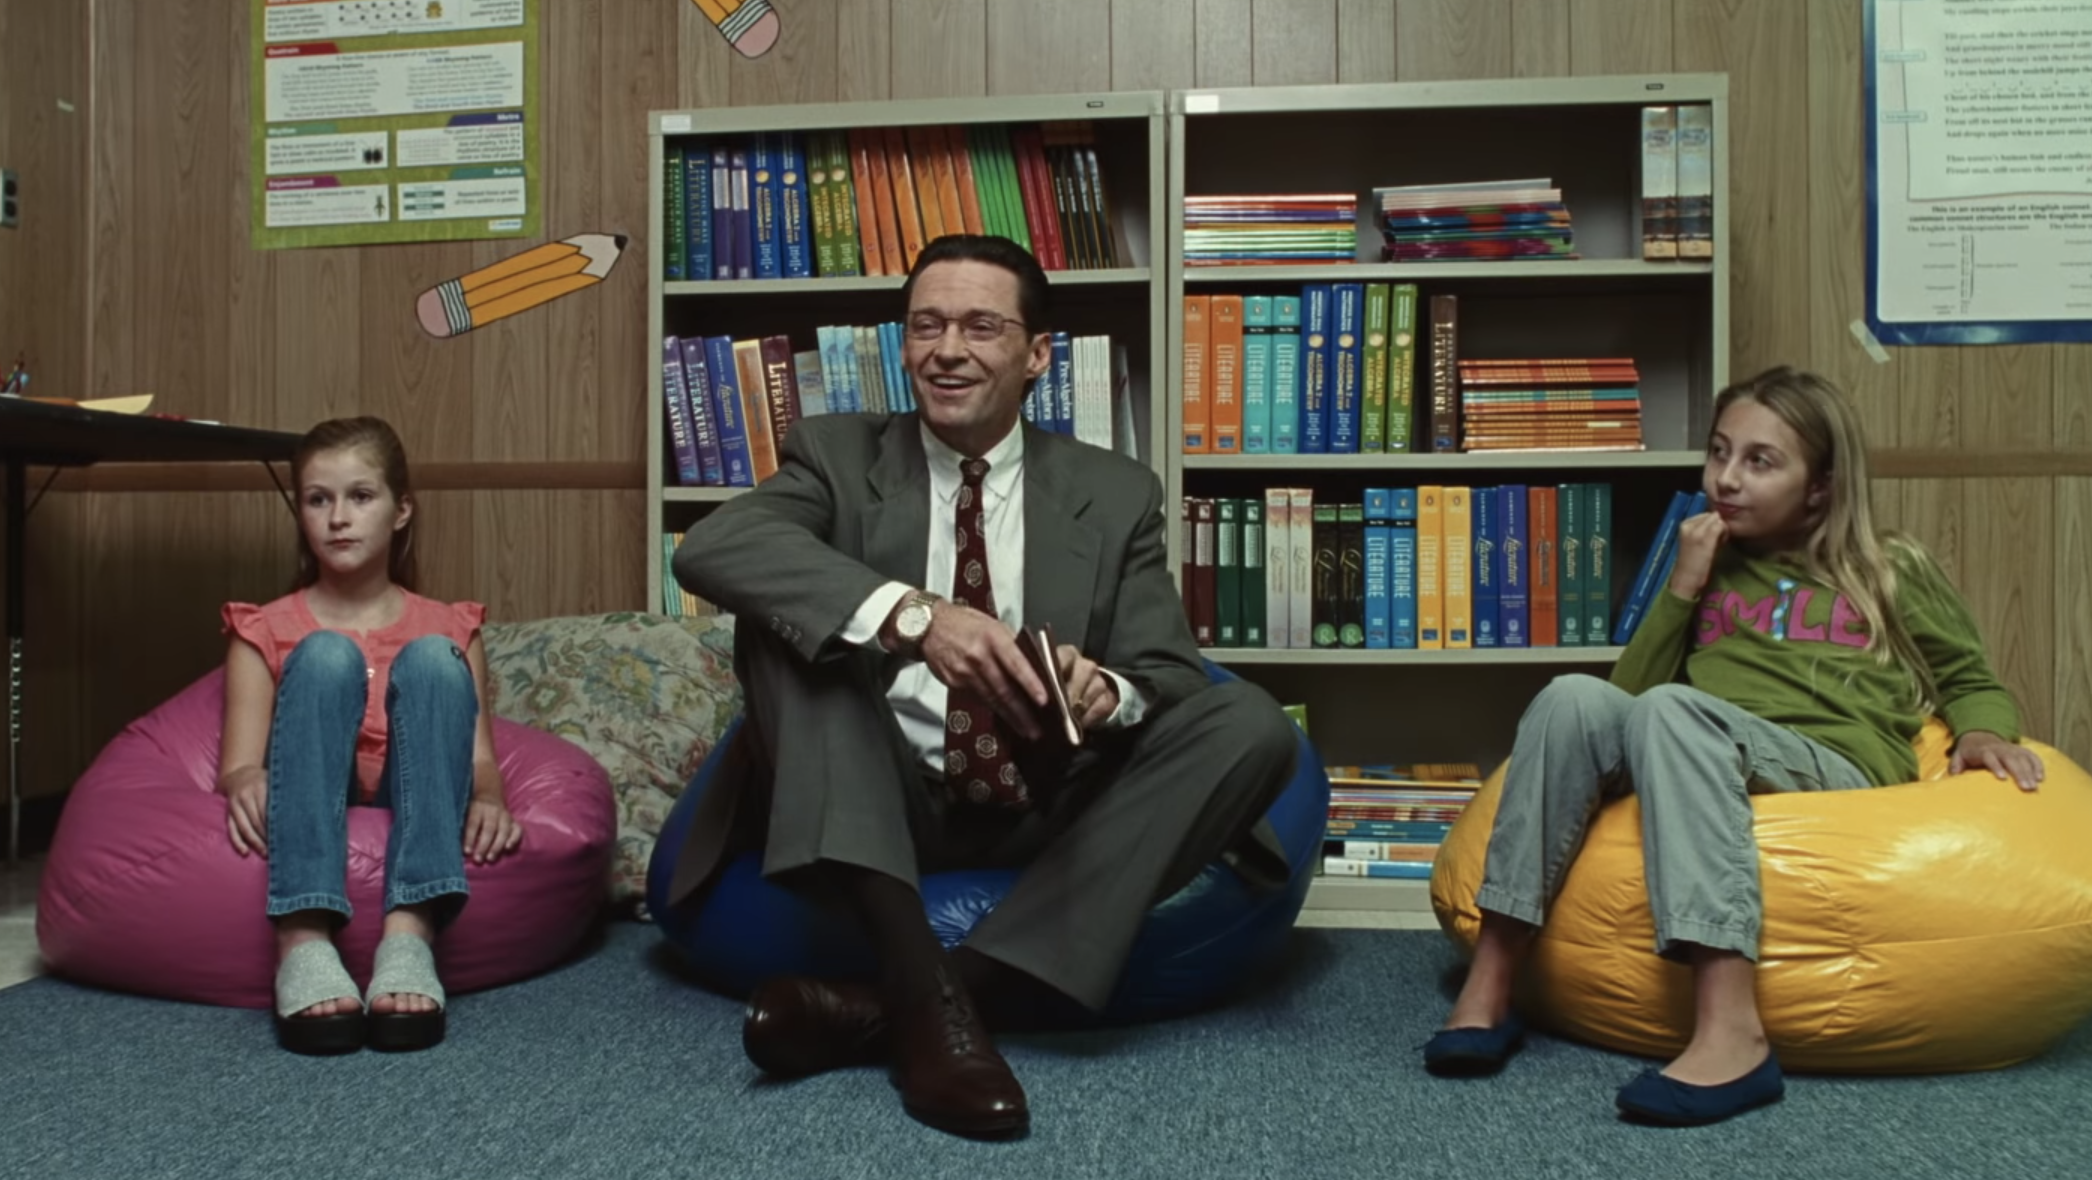 HBO's Bad Education